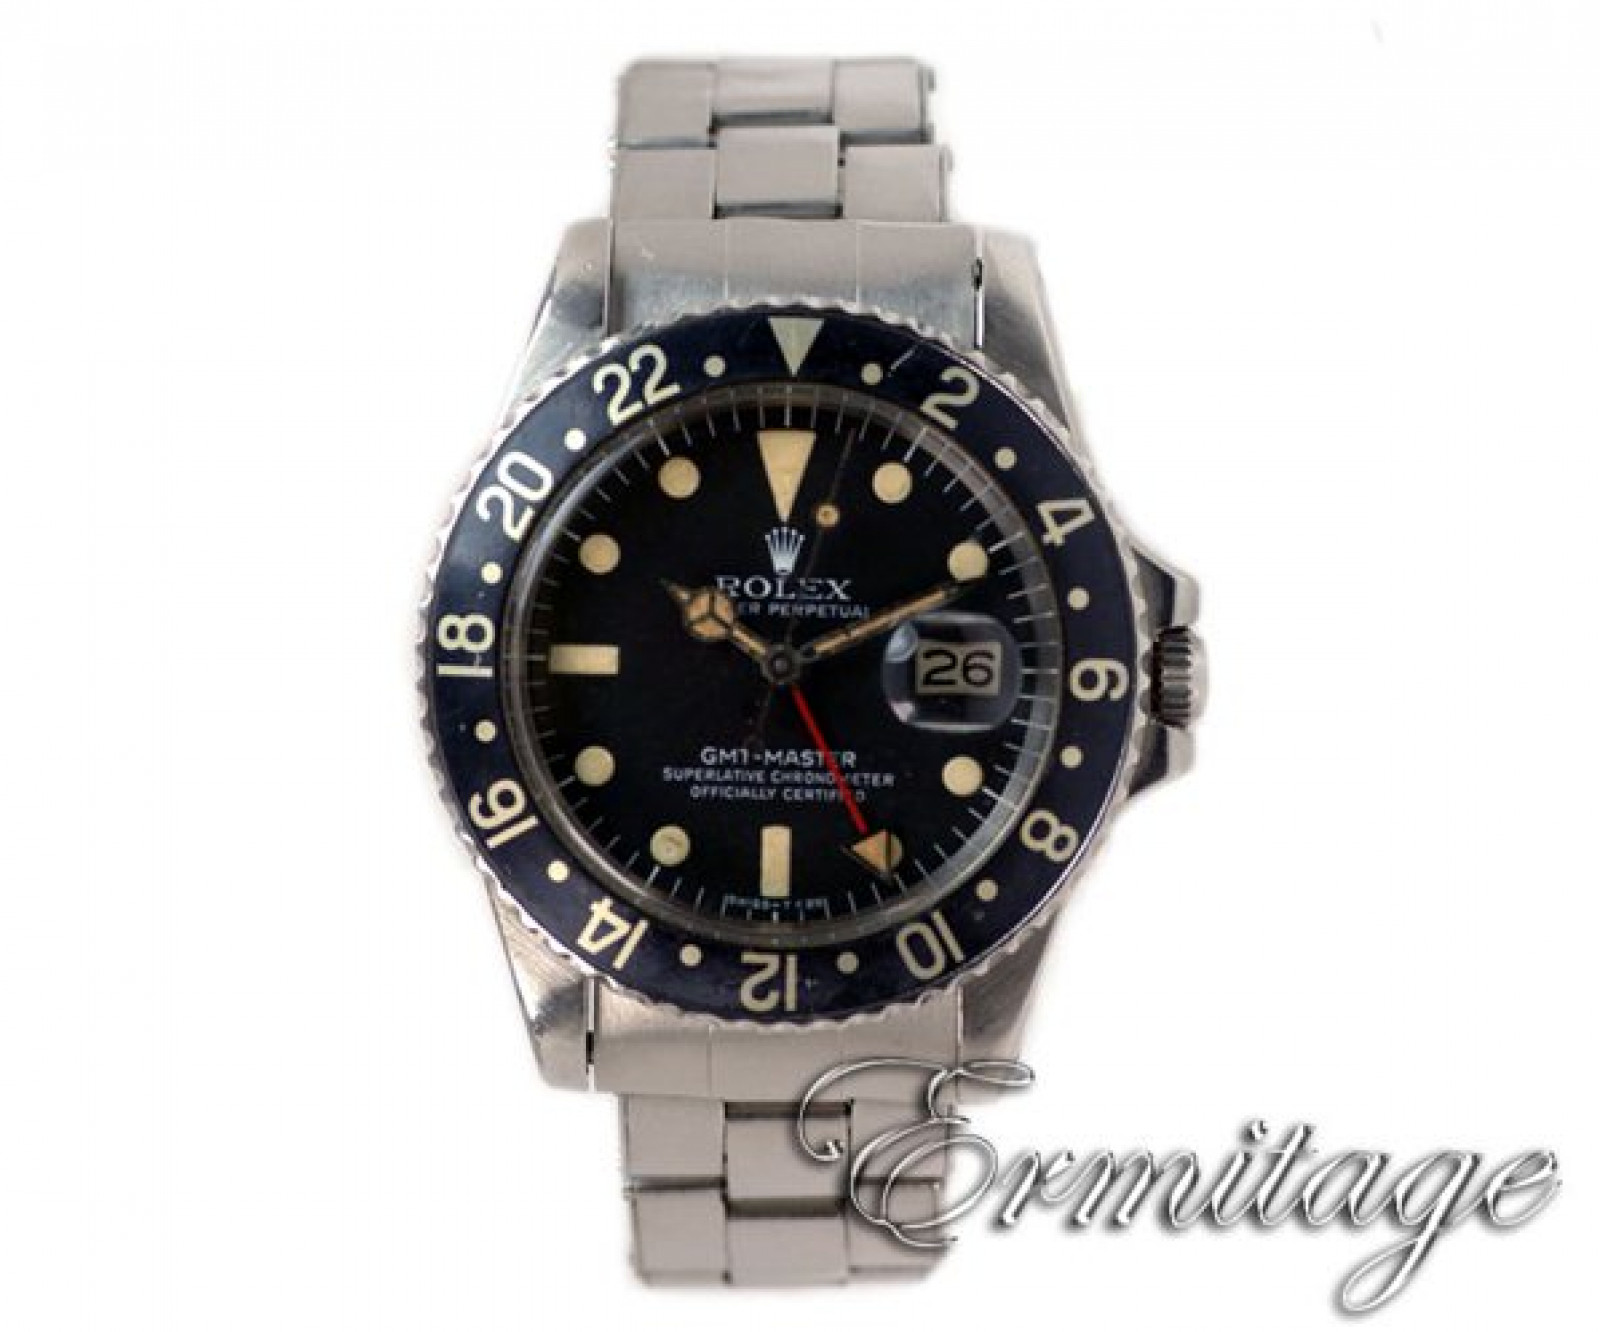 Vintage Rolex GMT-Master 1675 Steel Year 1977 with Black Dial 1977